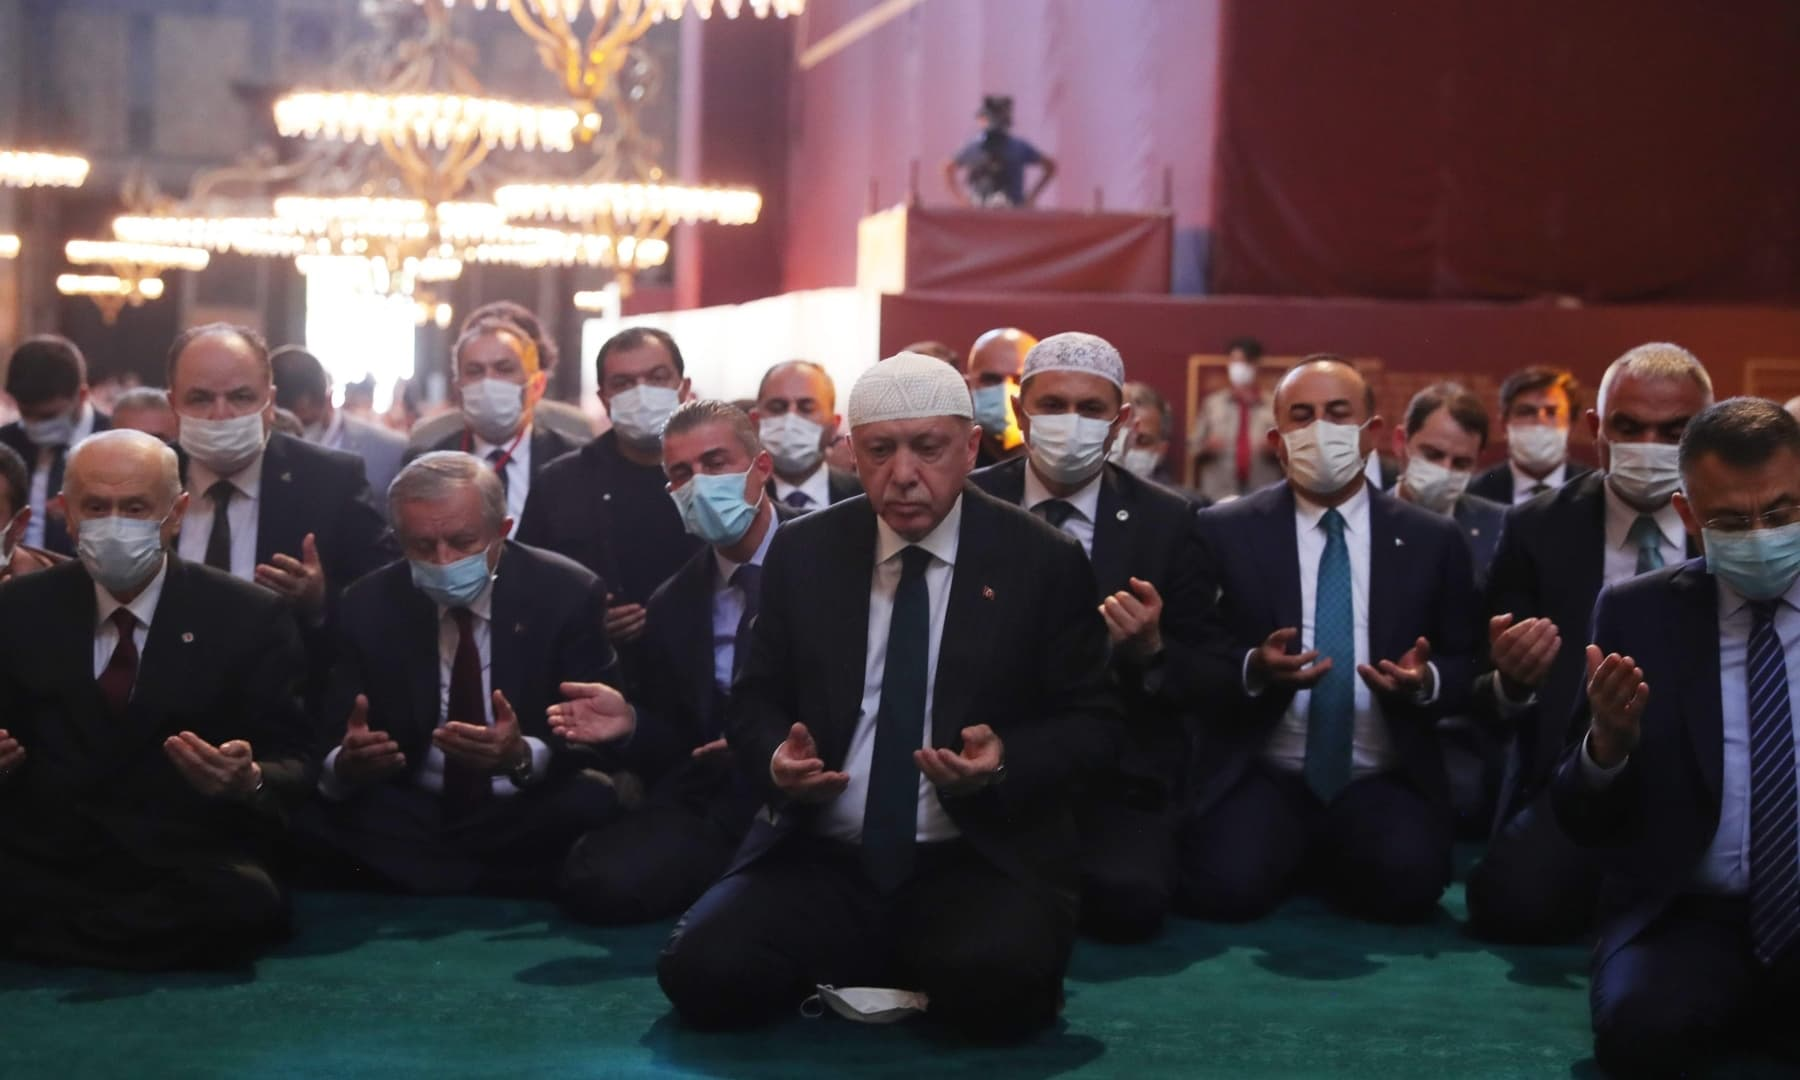 Turkey's President Tayyip Erdogan (C) and invited guests attend Friday prayers at Hagia Sophia Grand Mosque during the official opening ceremony of Hagia Sophia in Istanbul. — AFP/TURKISH PRESIDENTIAL PRESS SERVICE